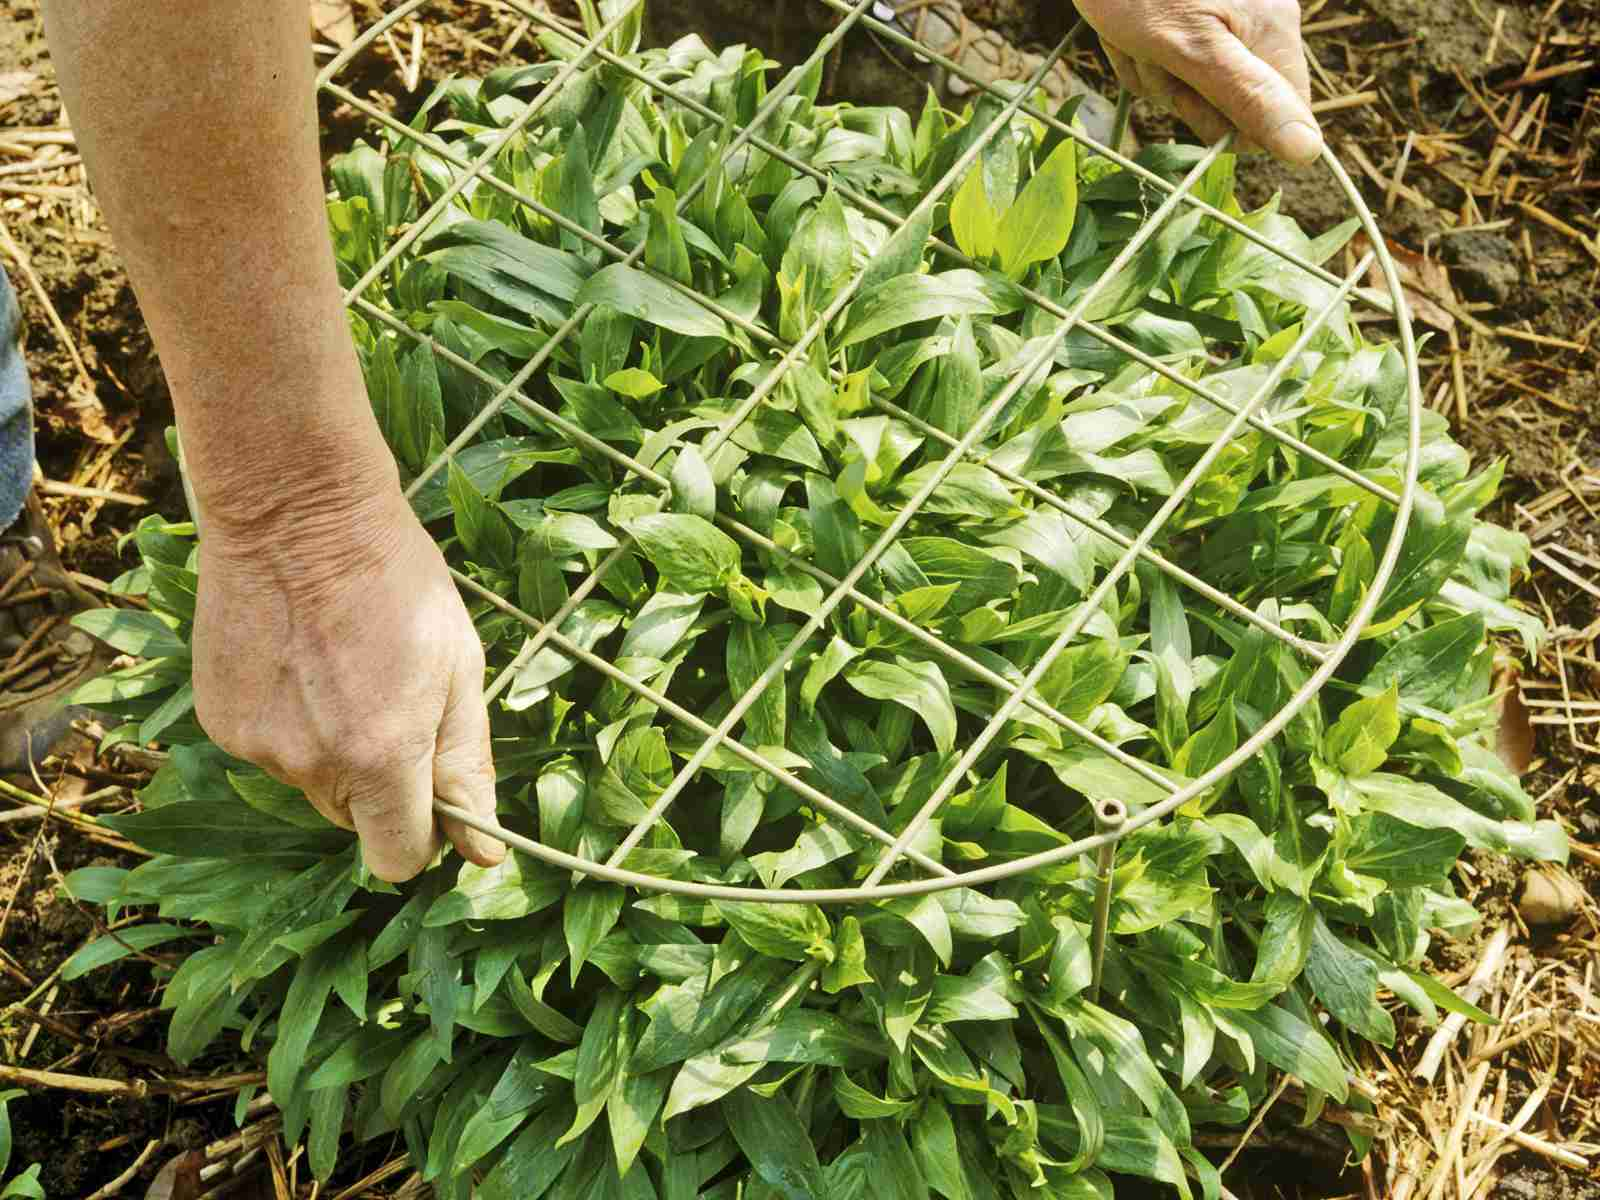 Peony stakes being placed over a plant